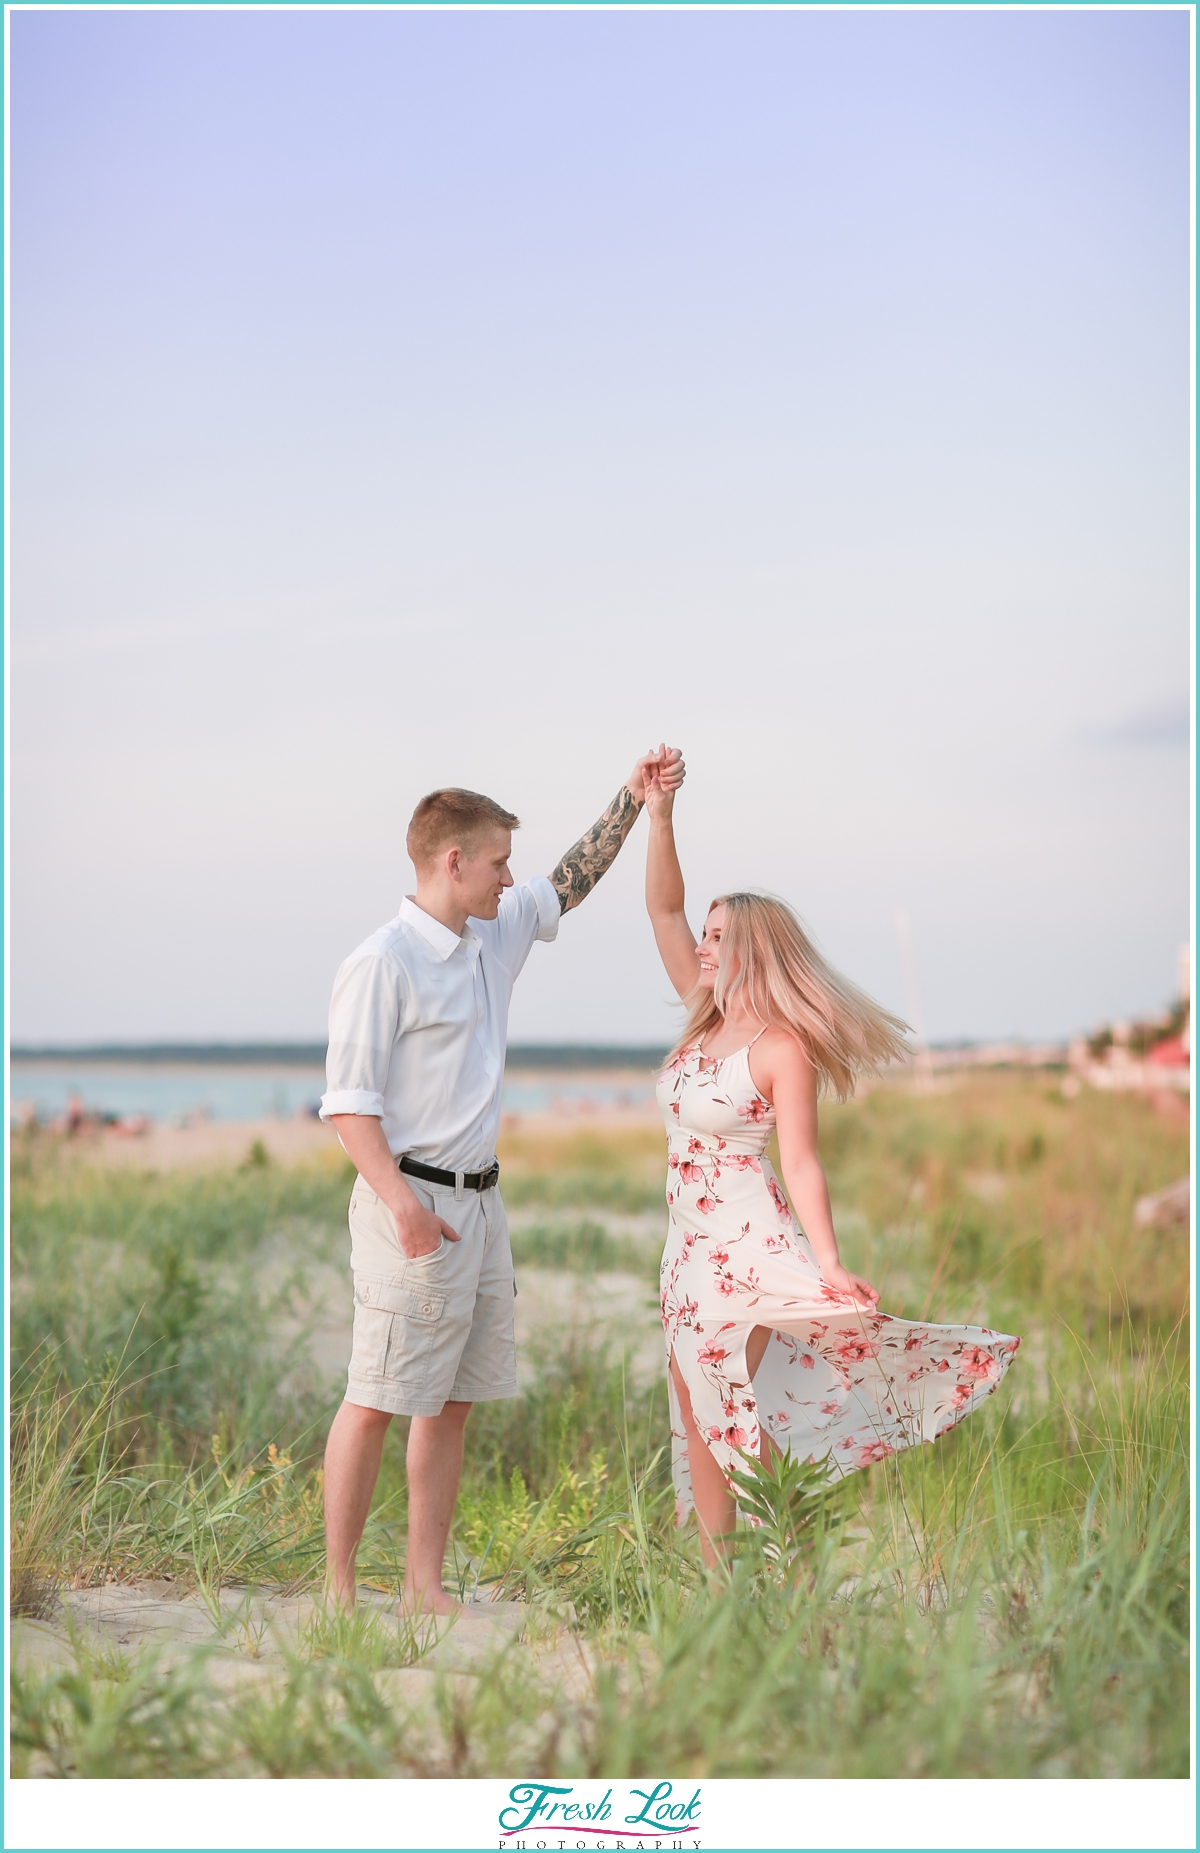 beach engagement photo ideas